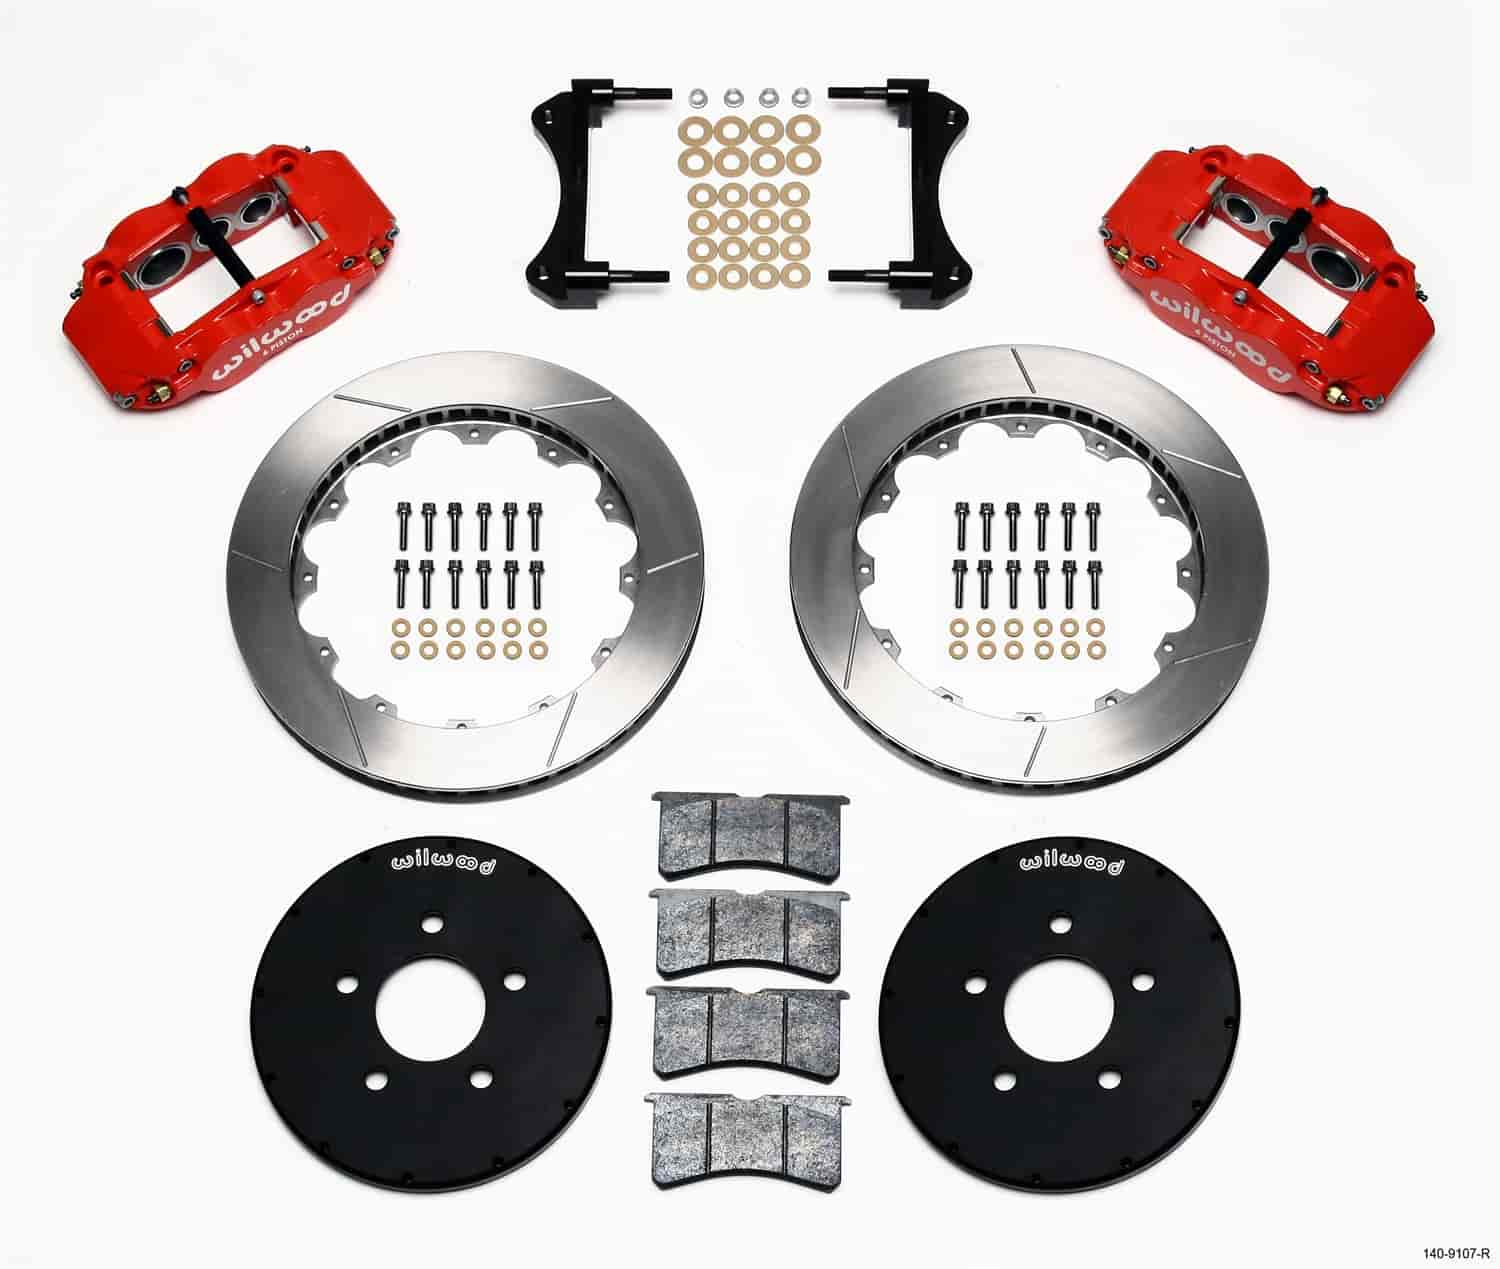 Wilwood 140-9107-R - Wilwood Superlite 6 Big Brake Front Hat Kits